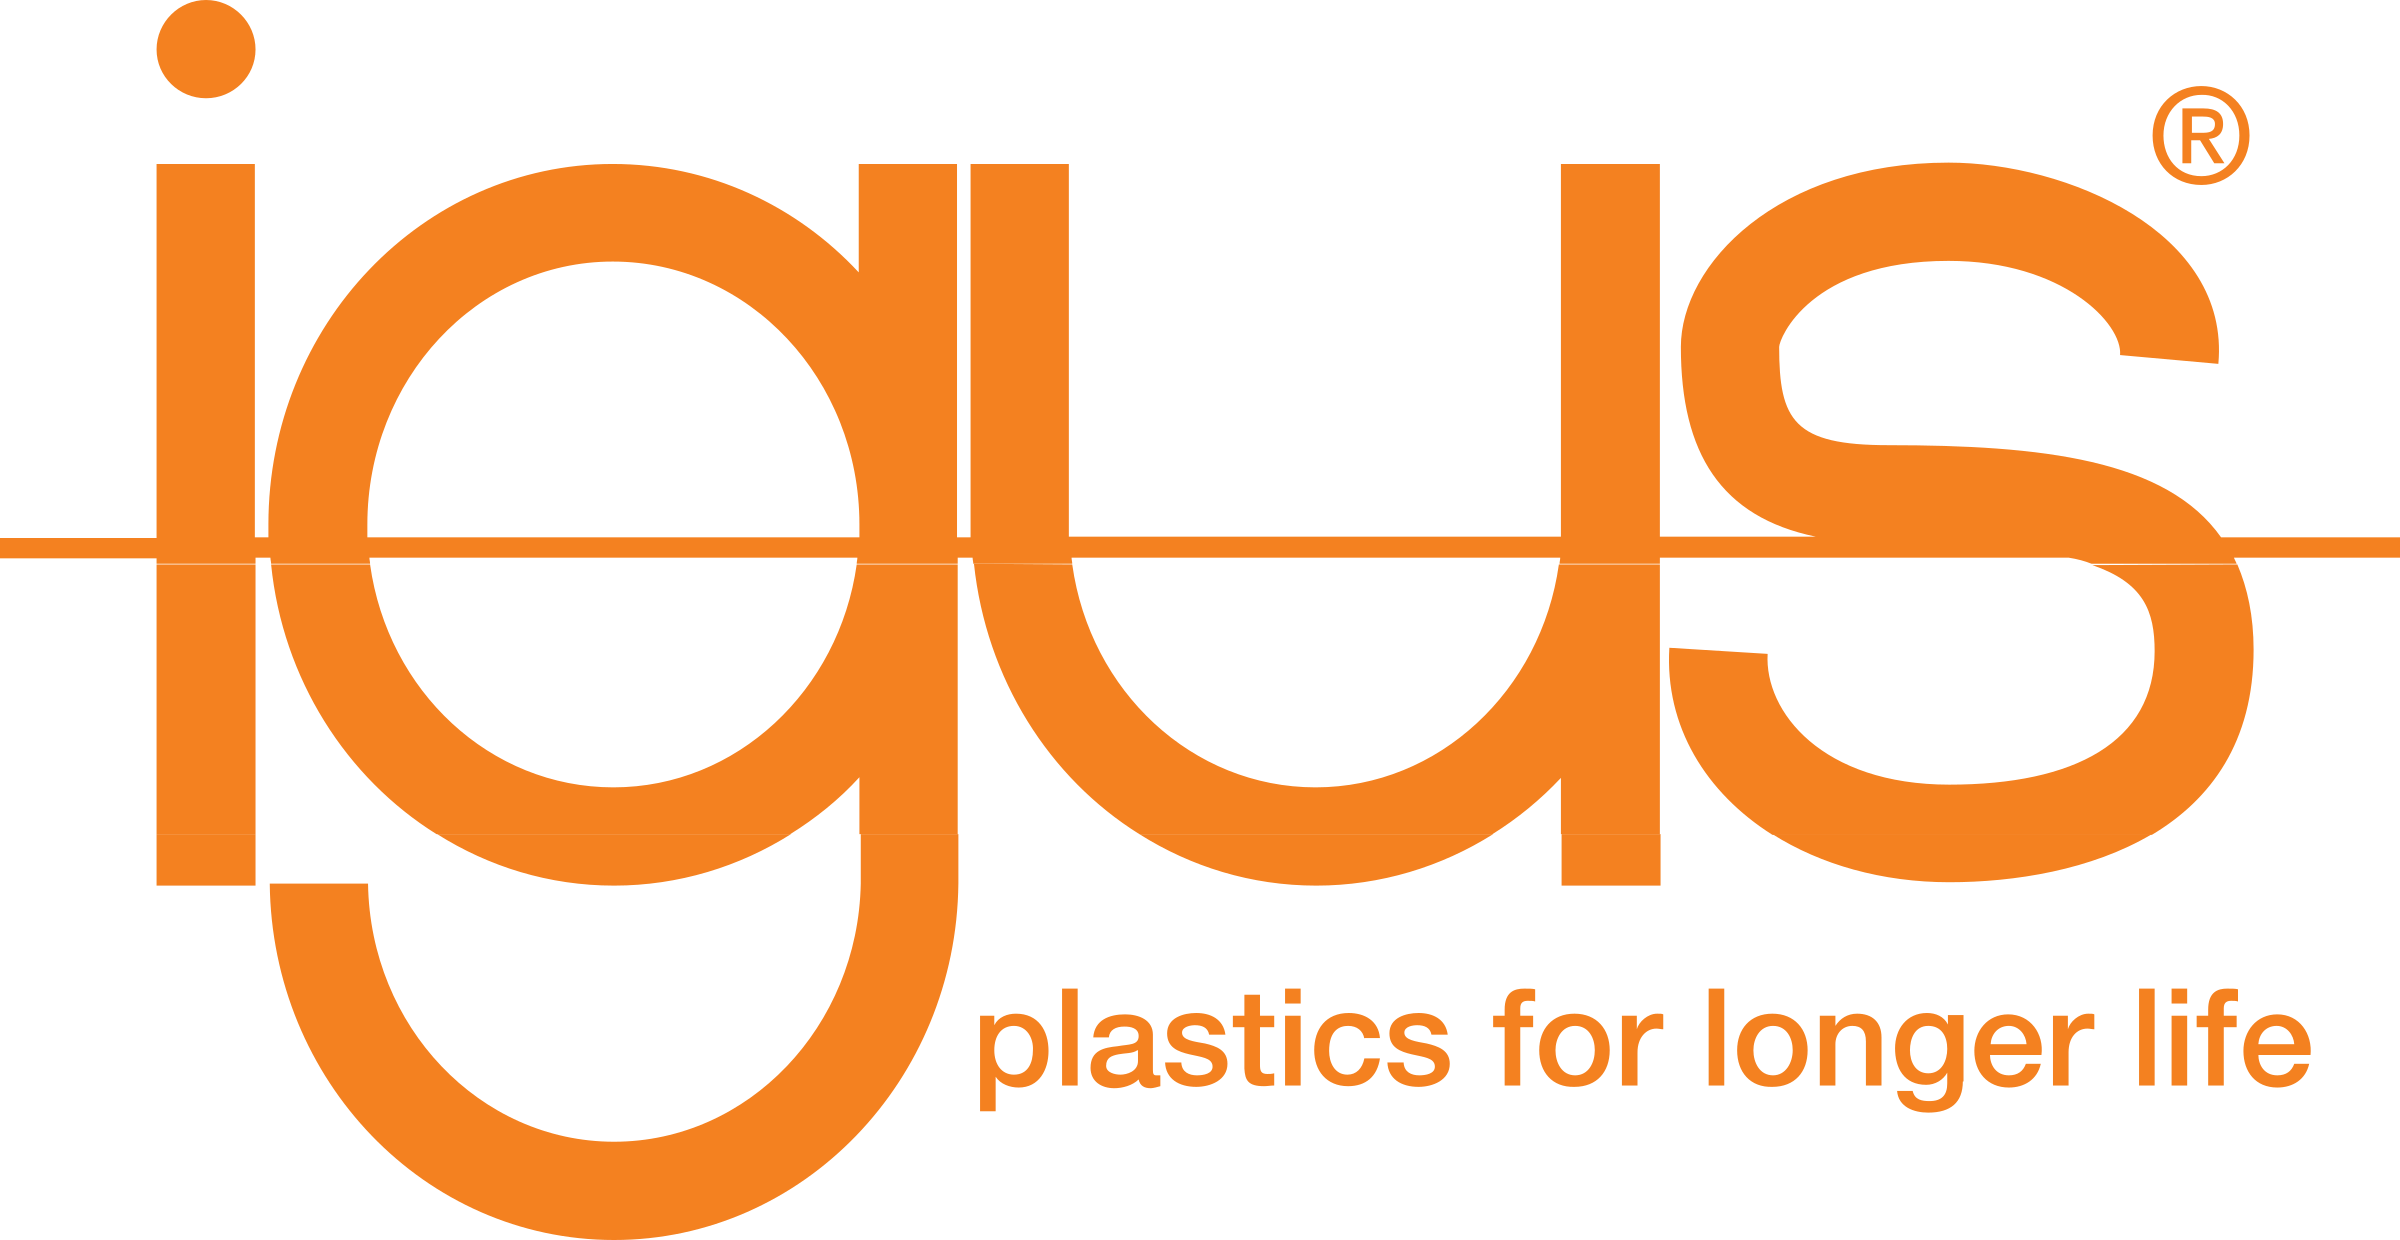 igus-logo-png-transparent